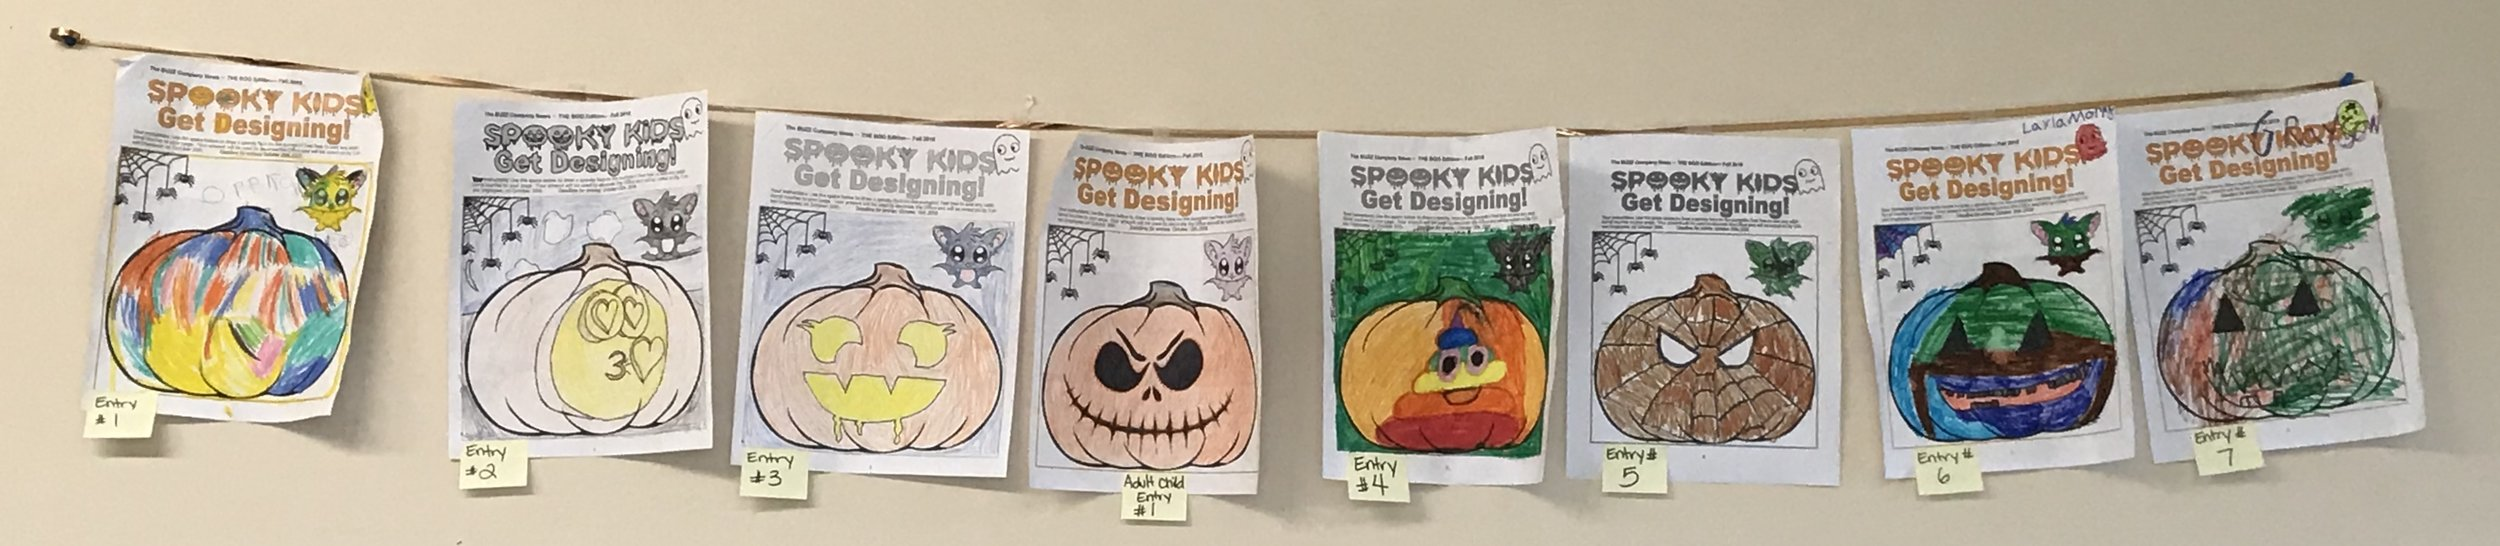 Colwin Kids get Designing FALL 2018 Contest Entries